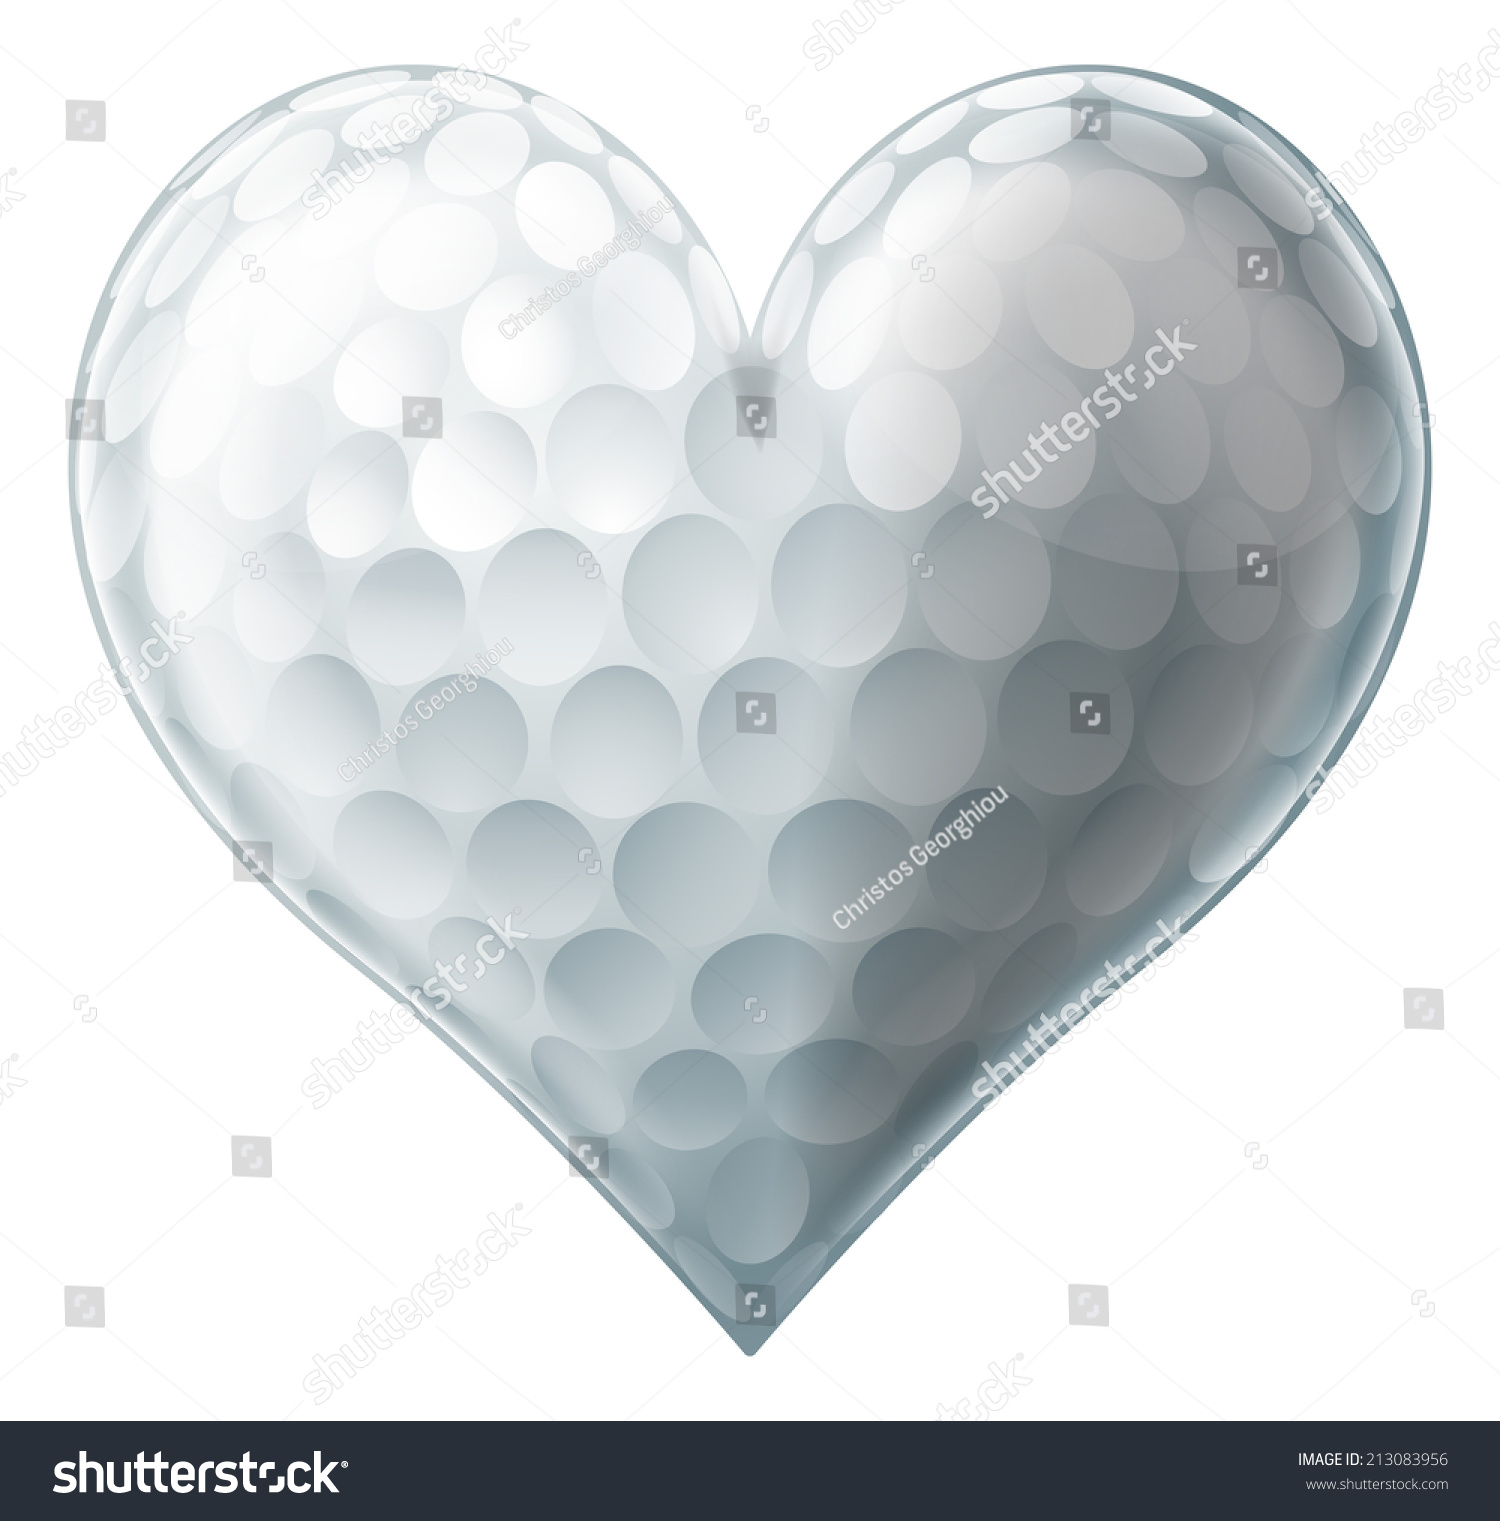 golf ball heart conceptual illustration love stock vector